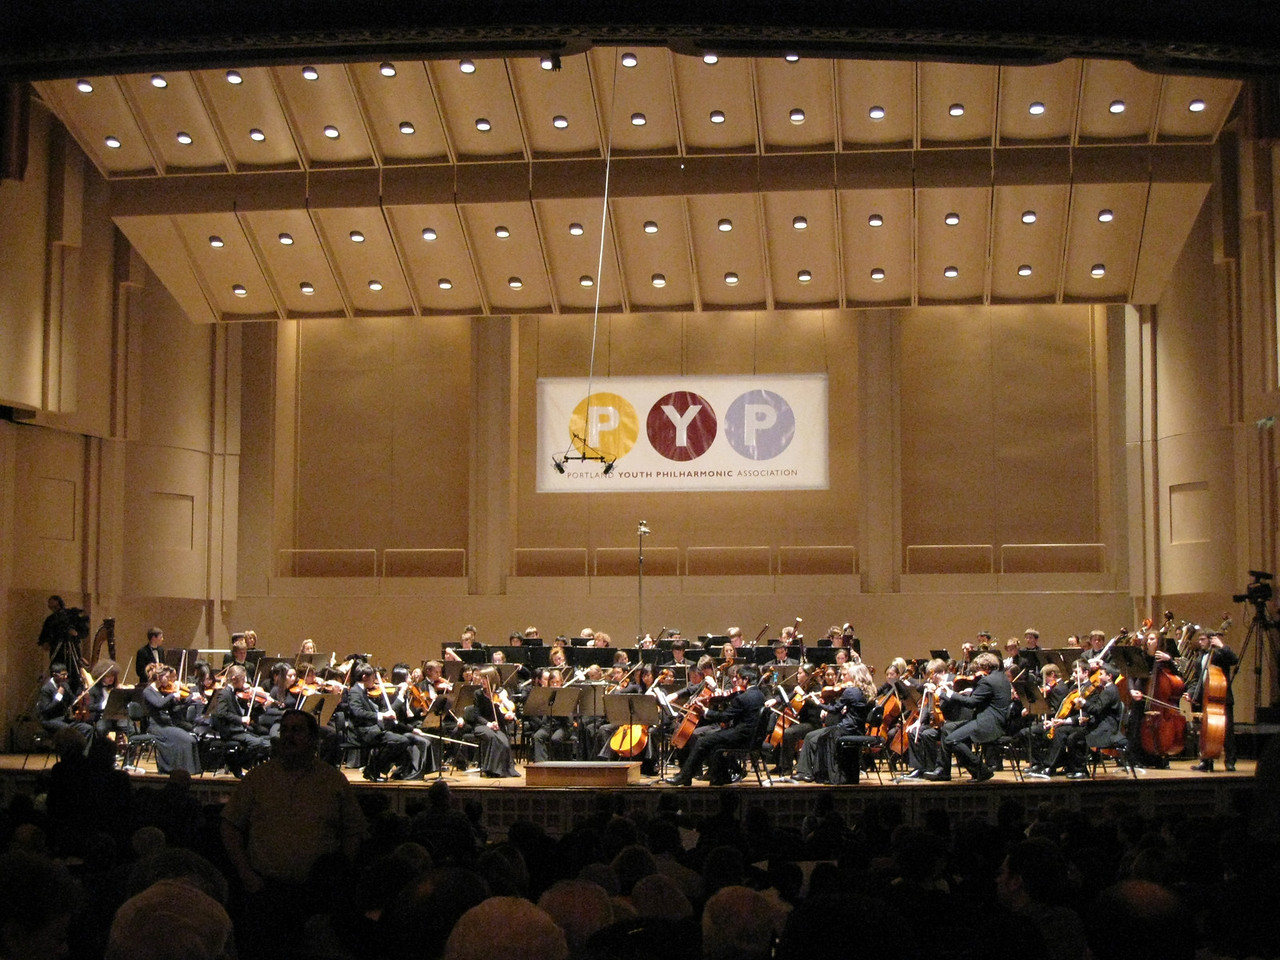 Saturday March 1st we went to see Carrie & Nick Turrell play in the Portland Youth Philharmonic Orchestra Winter Concert. The main performance was Gustav Mahler's 5th Symphony.